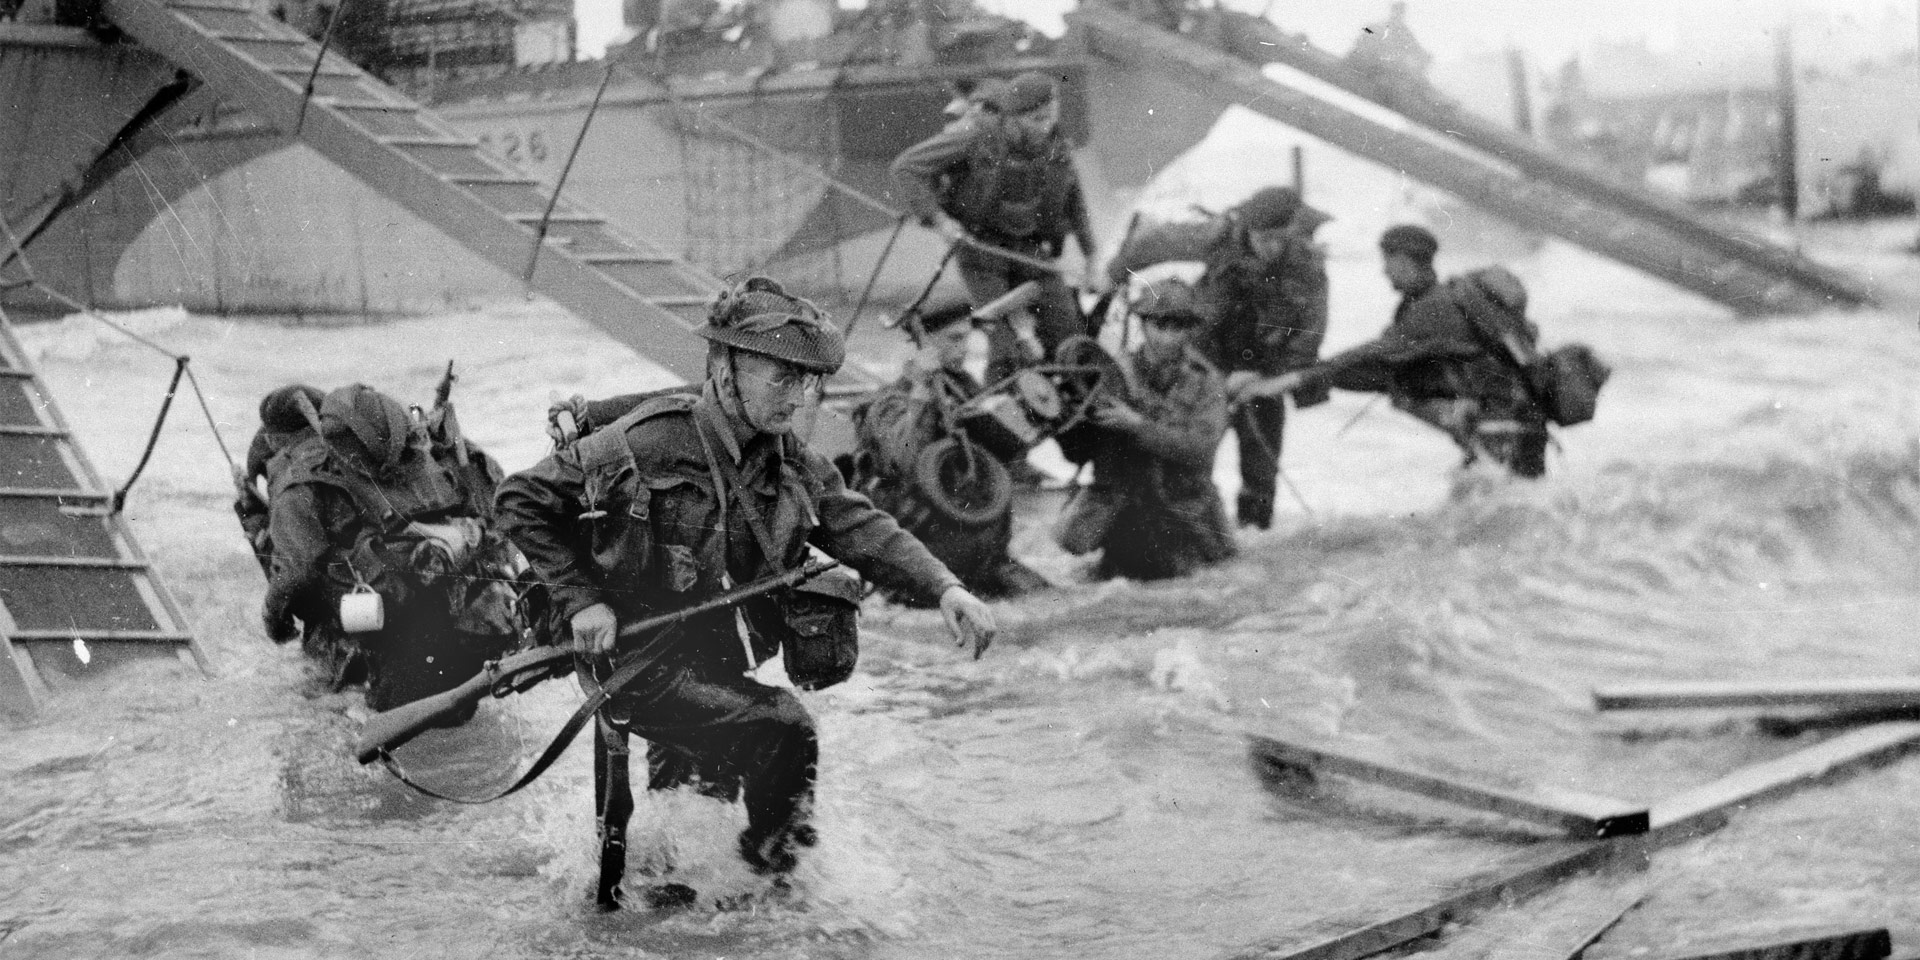 Troops wading ashore from landing craft, 6 June 1944